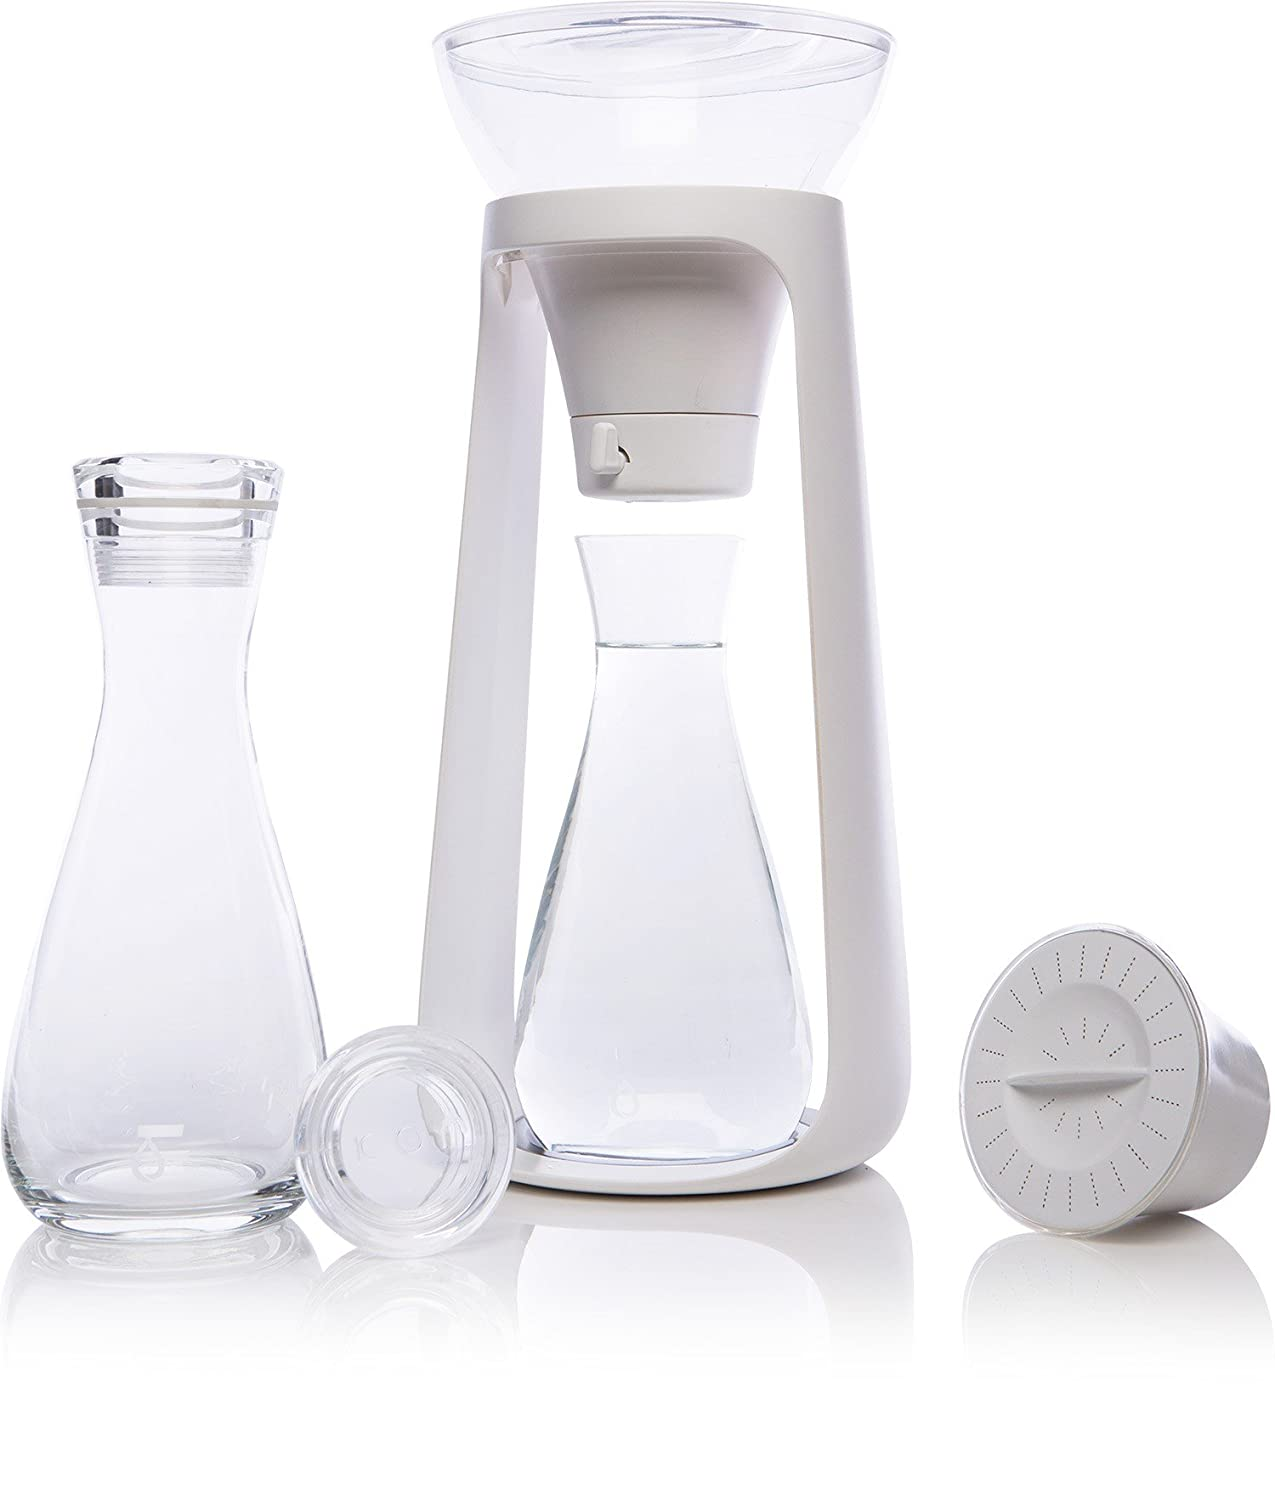 KOR Water Fall I Reusable countertop Water Filtration System I Includes 2 carafes I Holds 68 oz I Sustainable and BPA Free I Perfect for Fruit/herb infusions I Purifies 80 gallons of Water per Filter